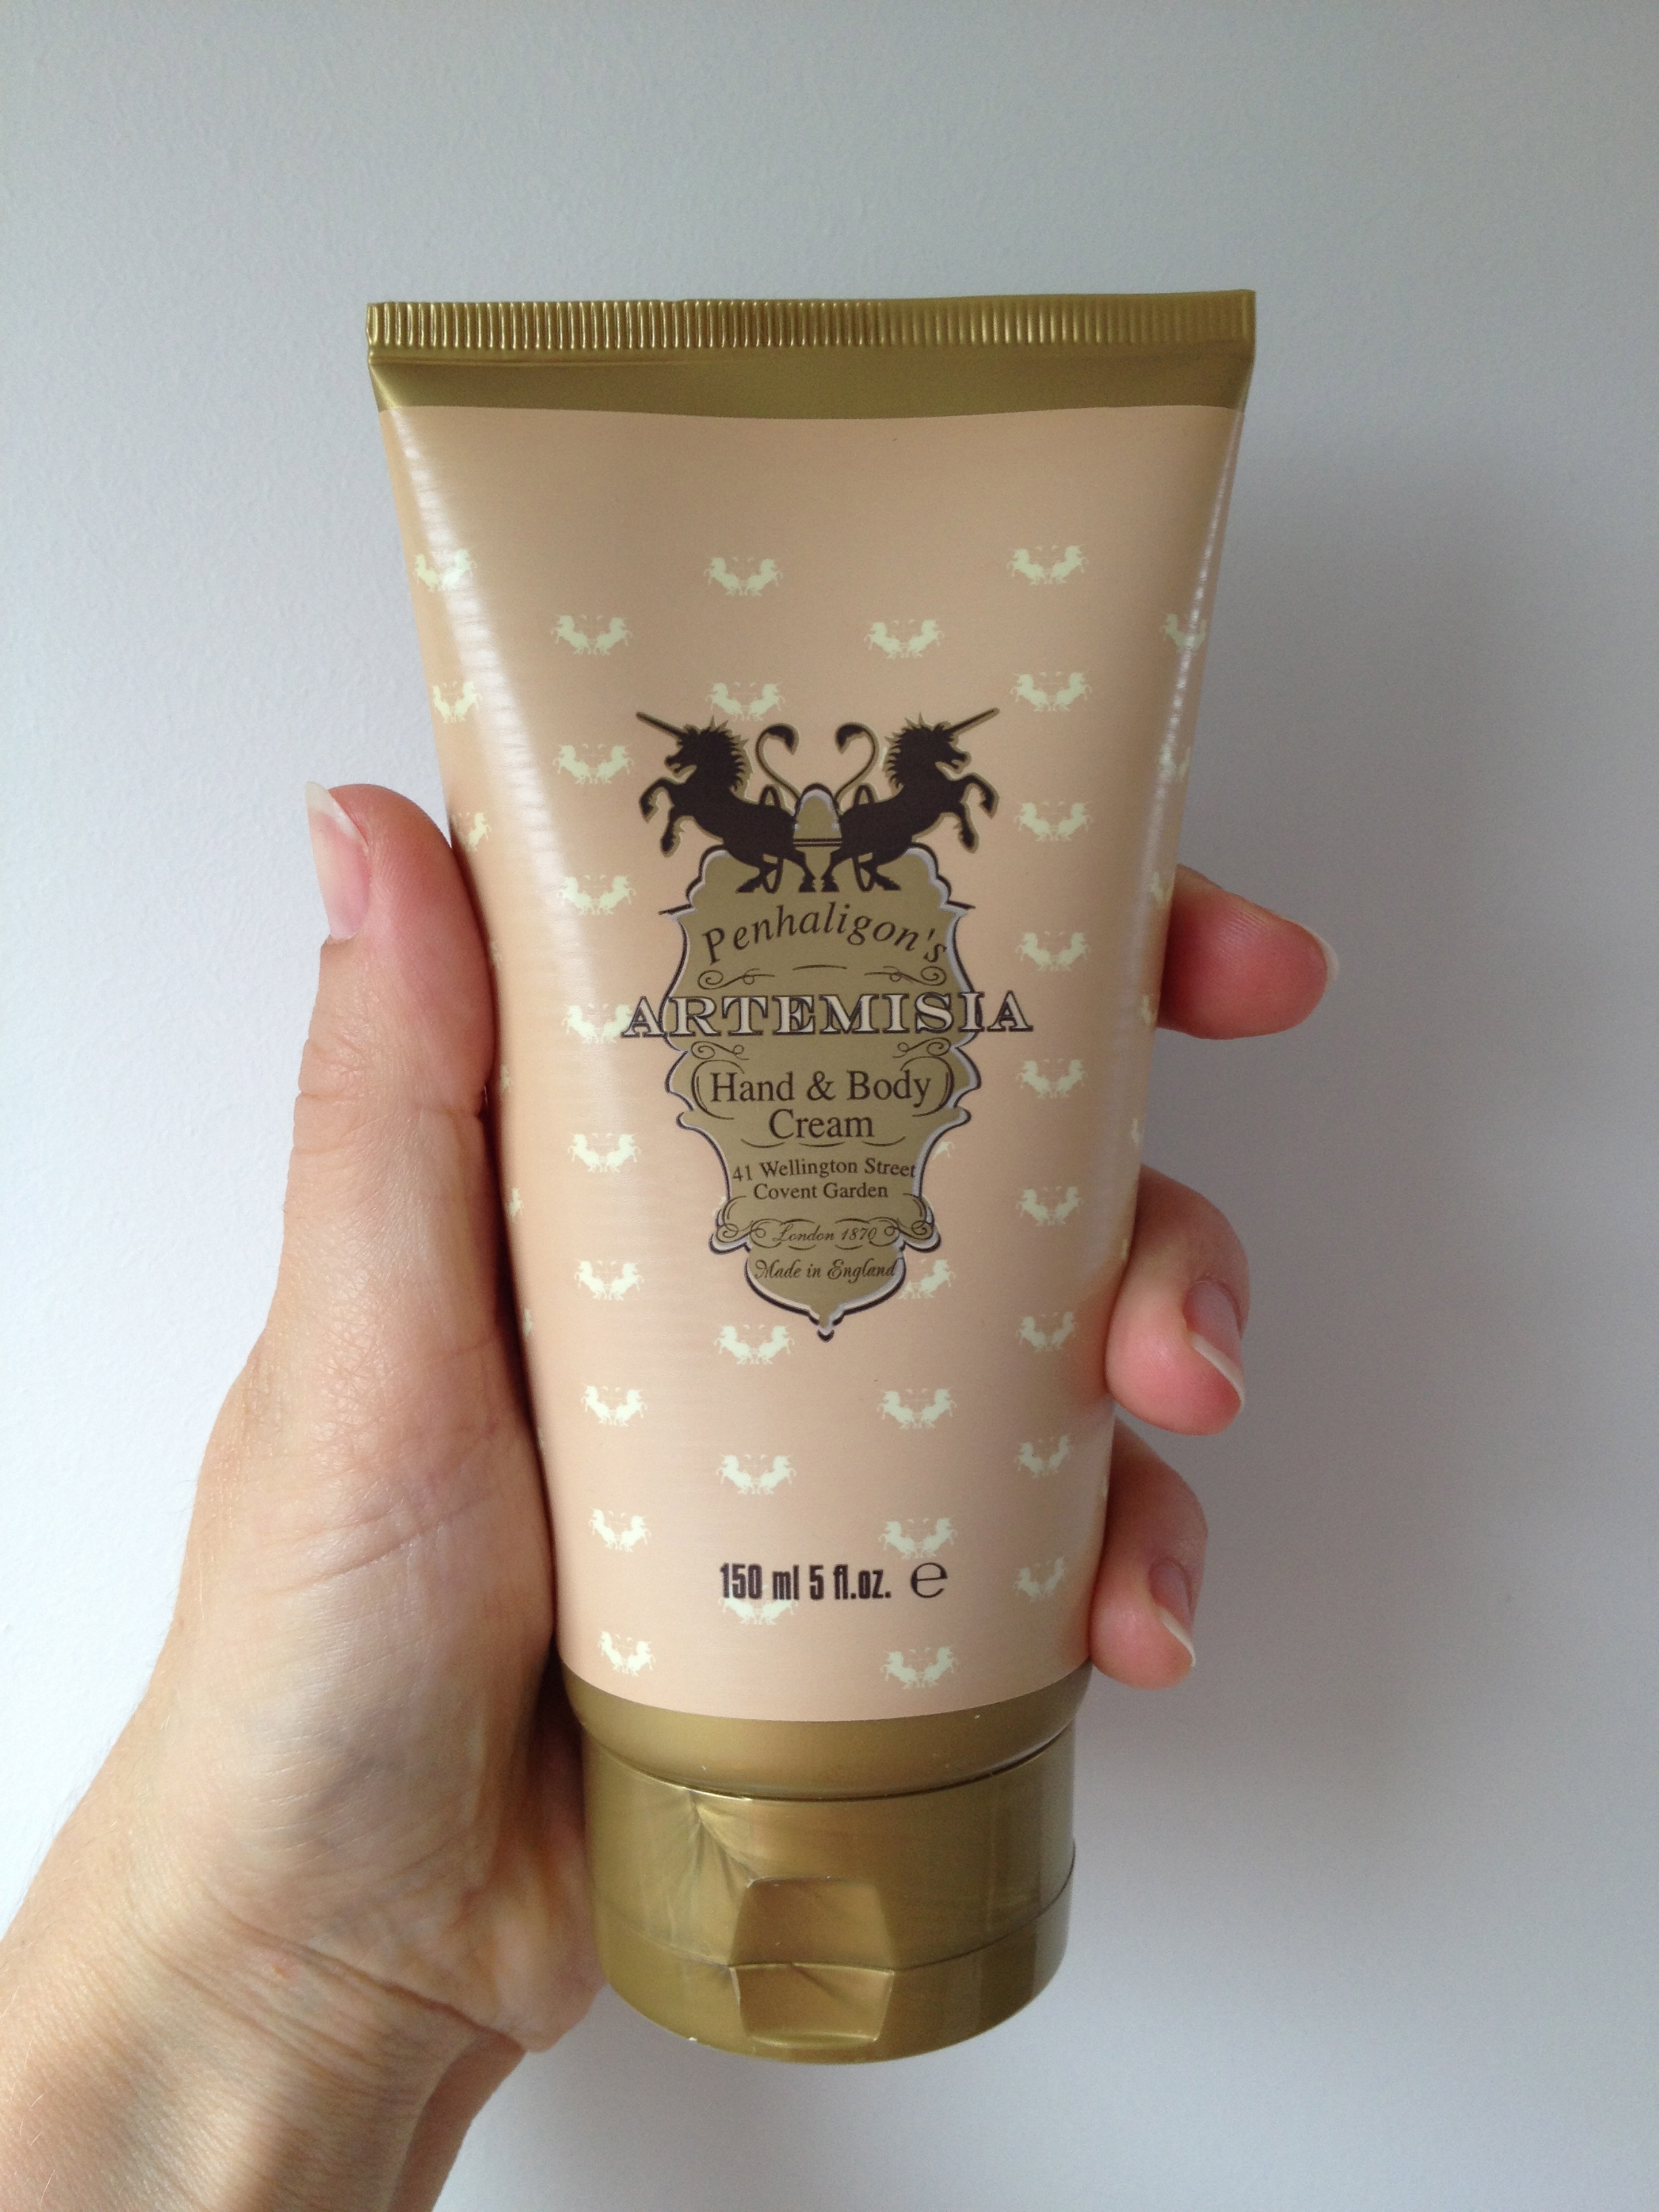 Artemisia Hand & Body Cream